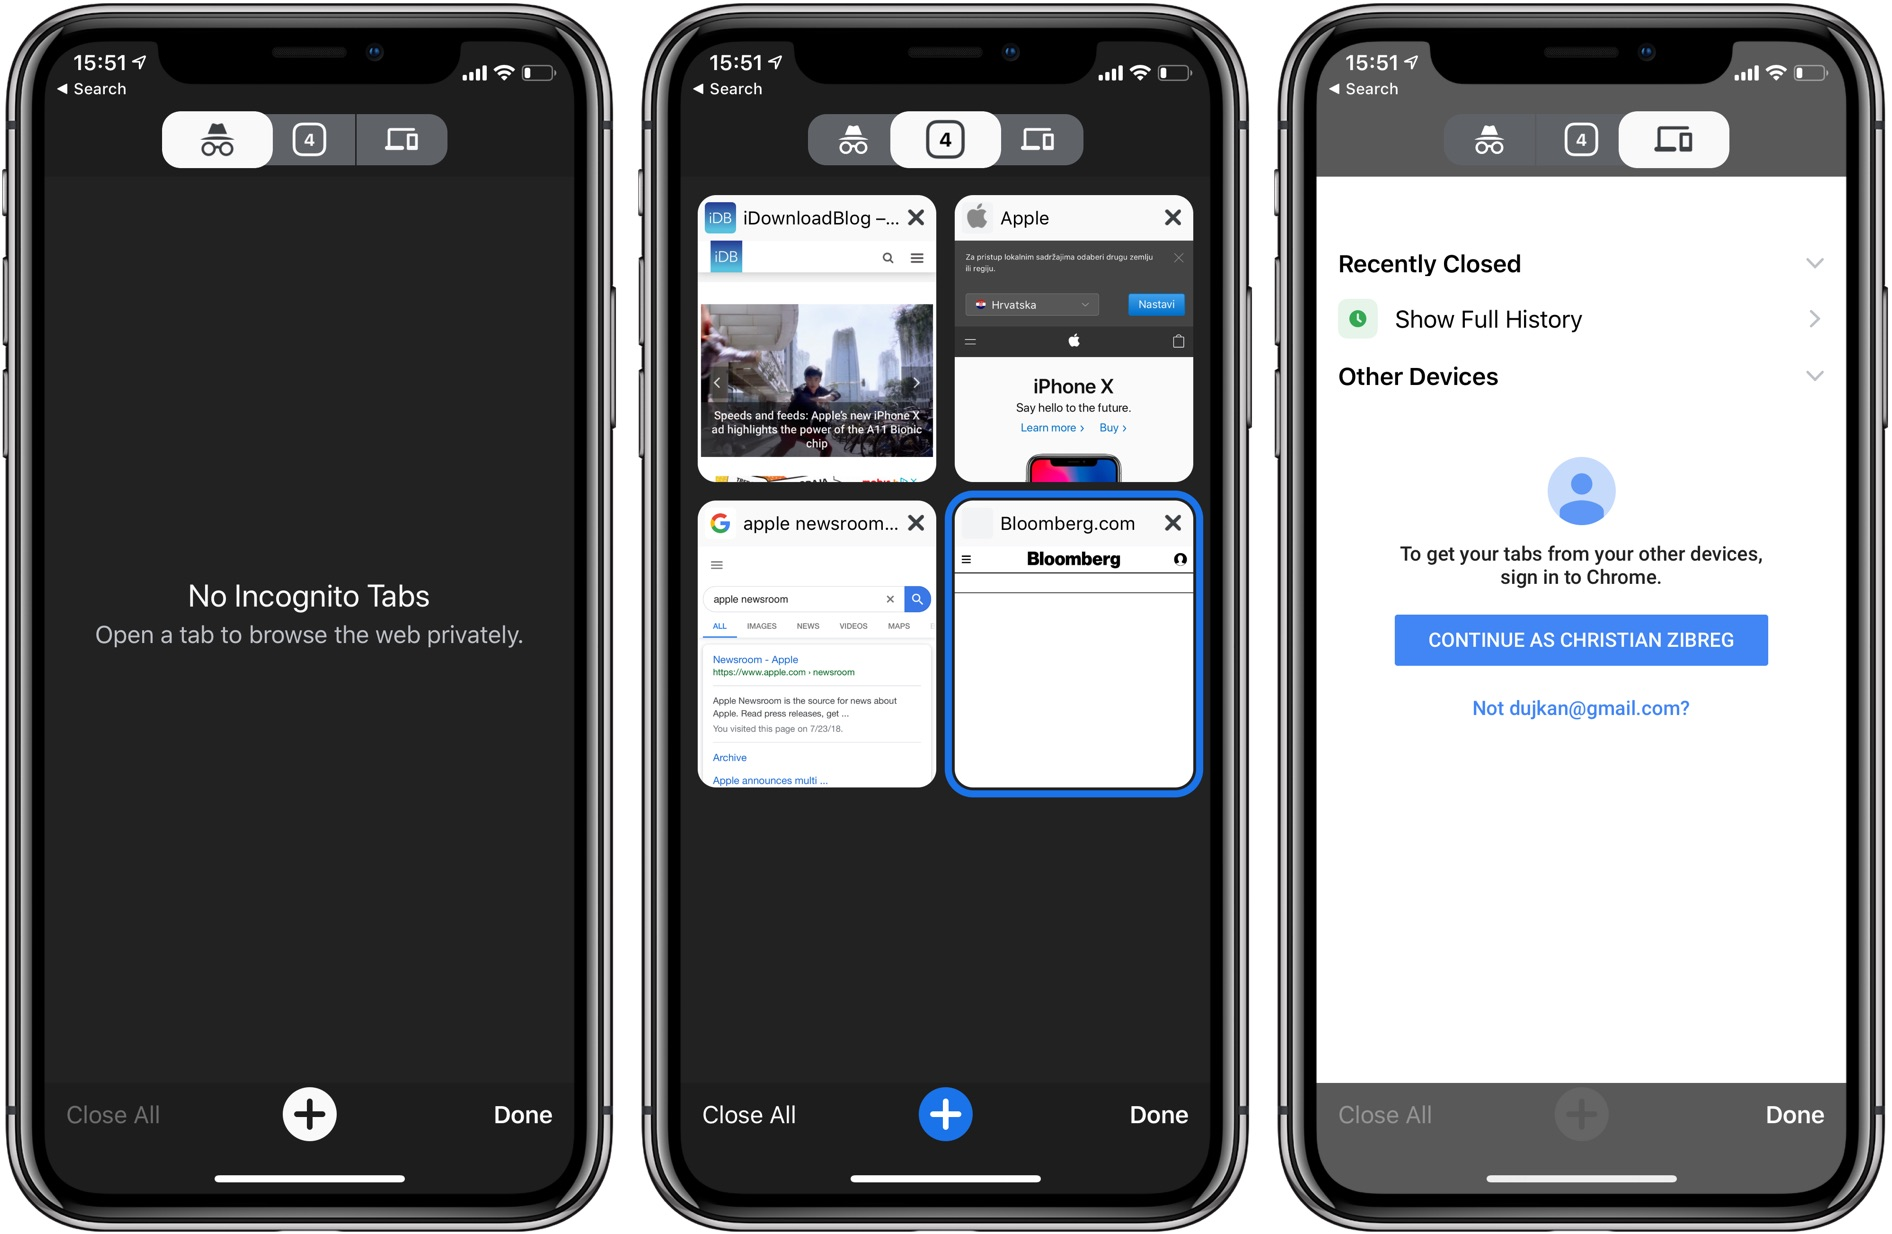 The New Tap page in Chrome for iOS has been redesigned as well to be more useful than before